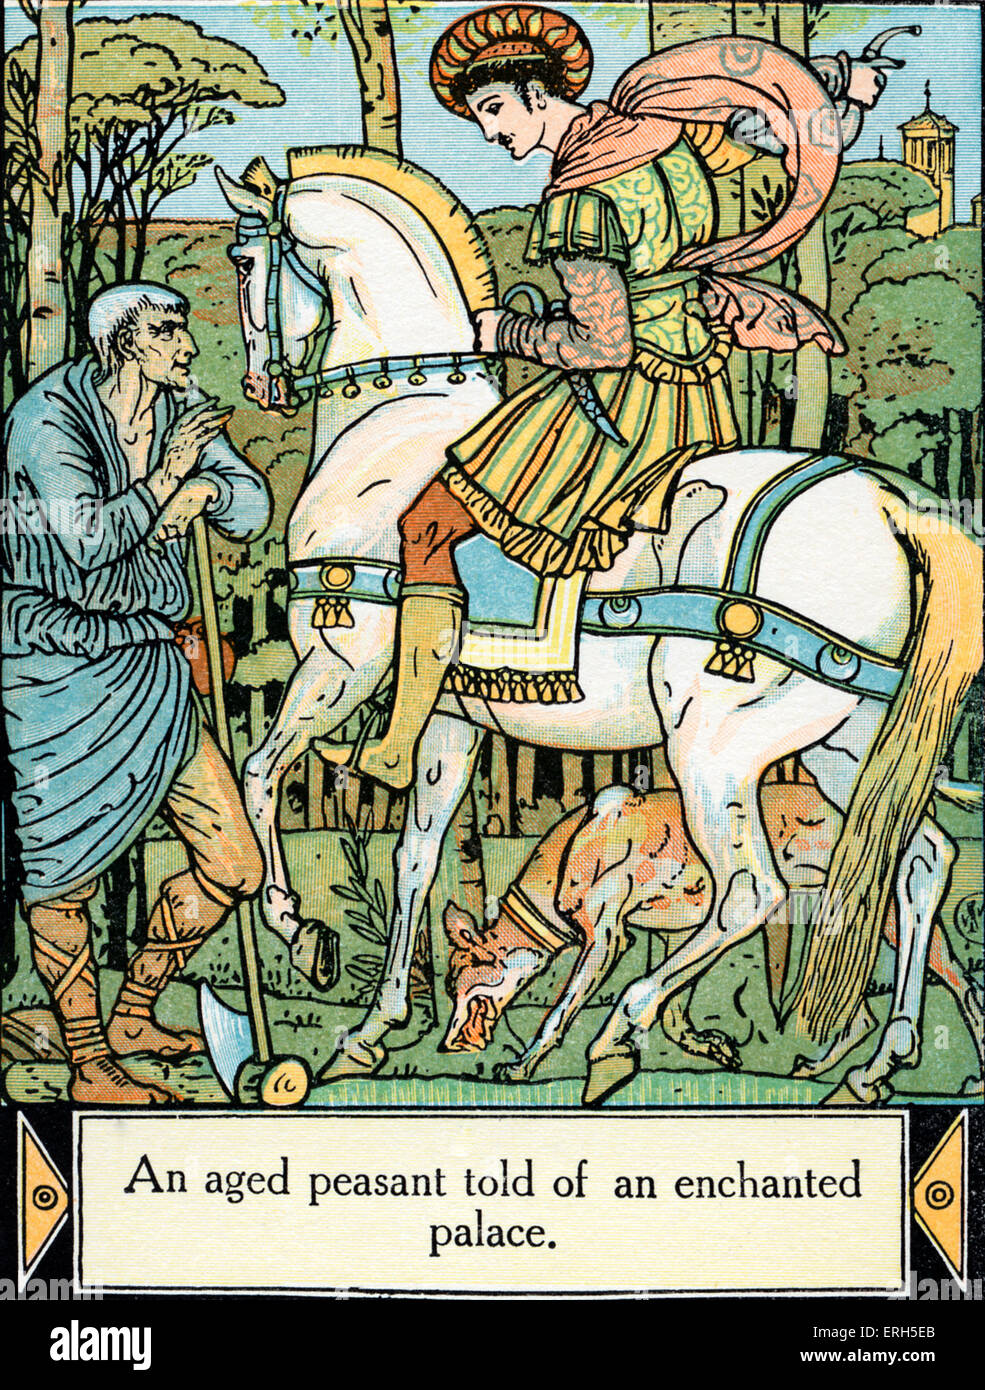 Sleeping Beauty written and illustrated by Walter Crane and published in 1914. The scene depicts the Prince being - Stock Image